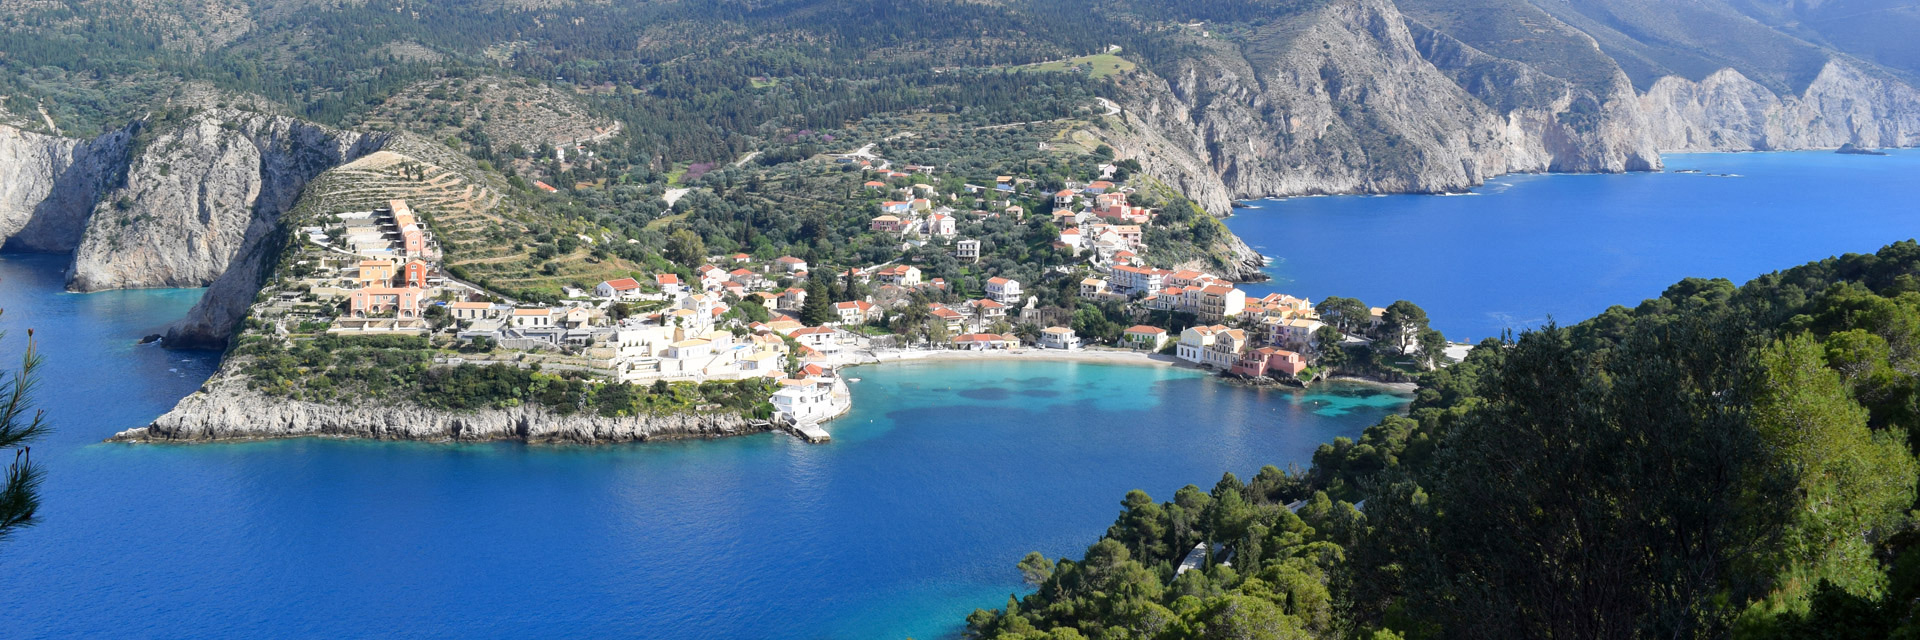 kefalonia_attractions_header